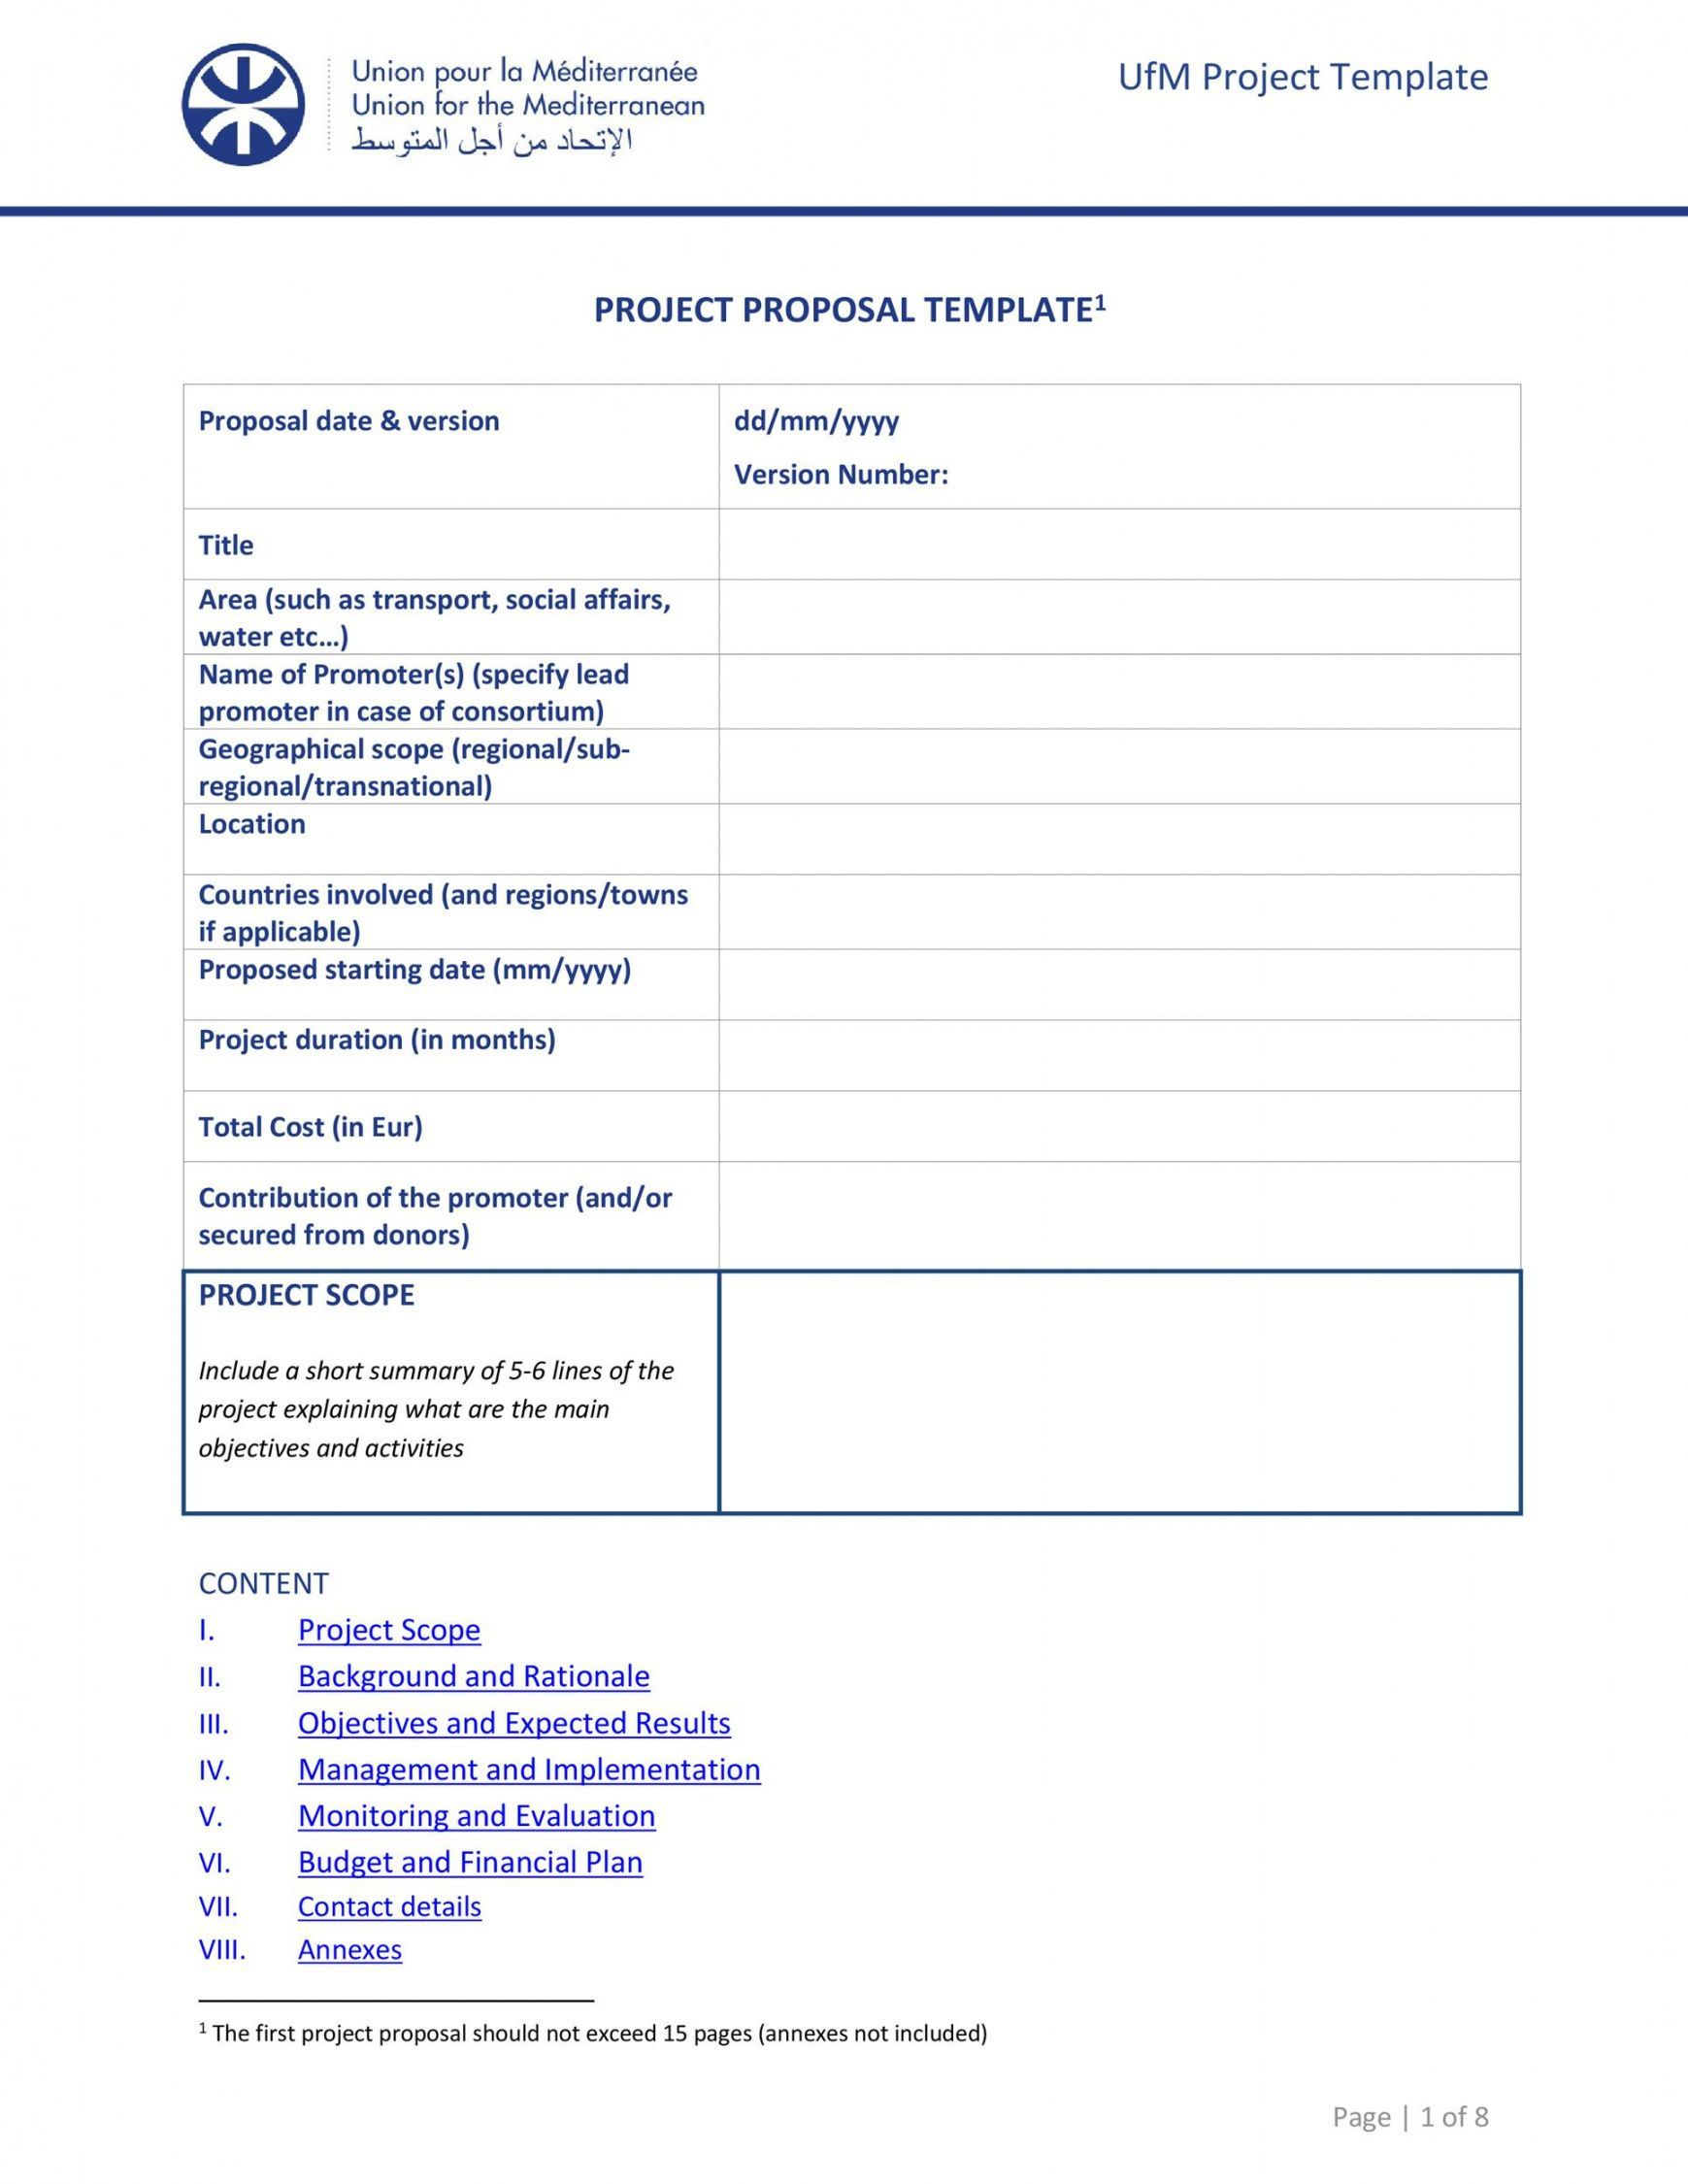 Project Management Proposal Template in 2020 Proposal